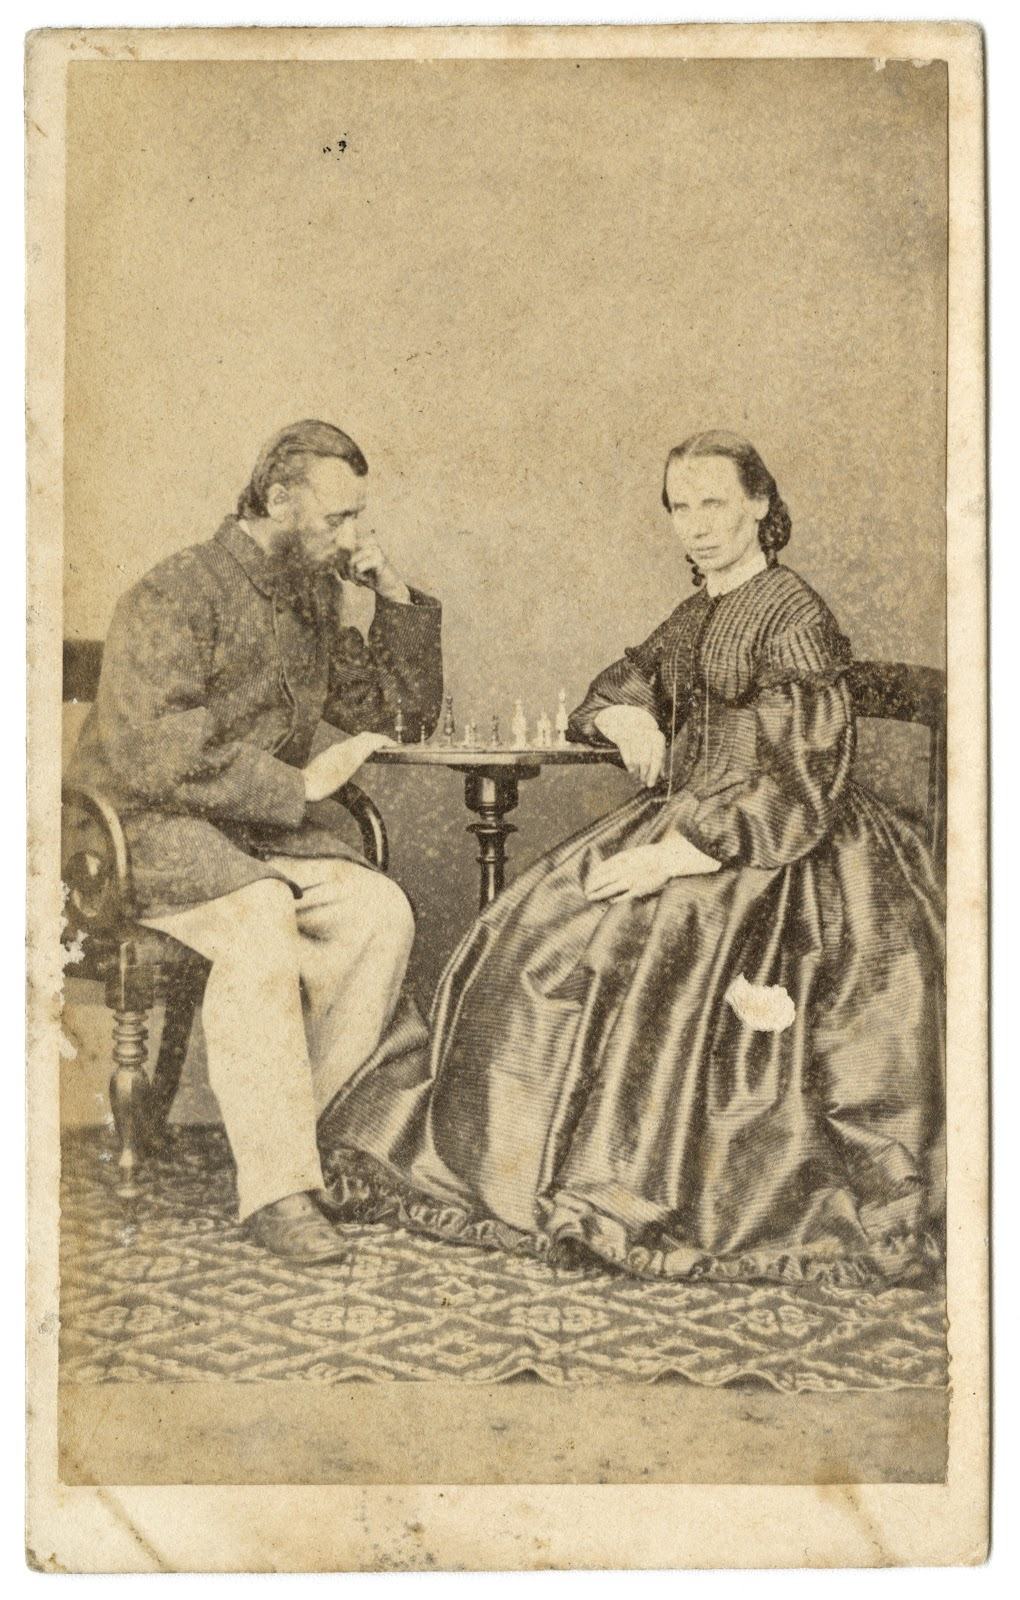 Alfred Barrett and wife Harriet Biggs playing chess 1870s